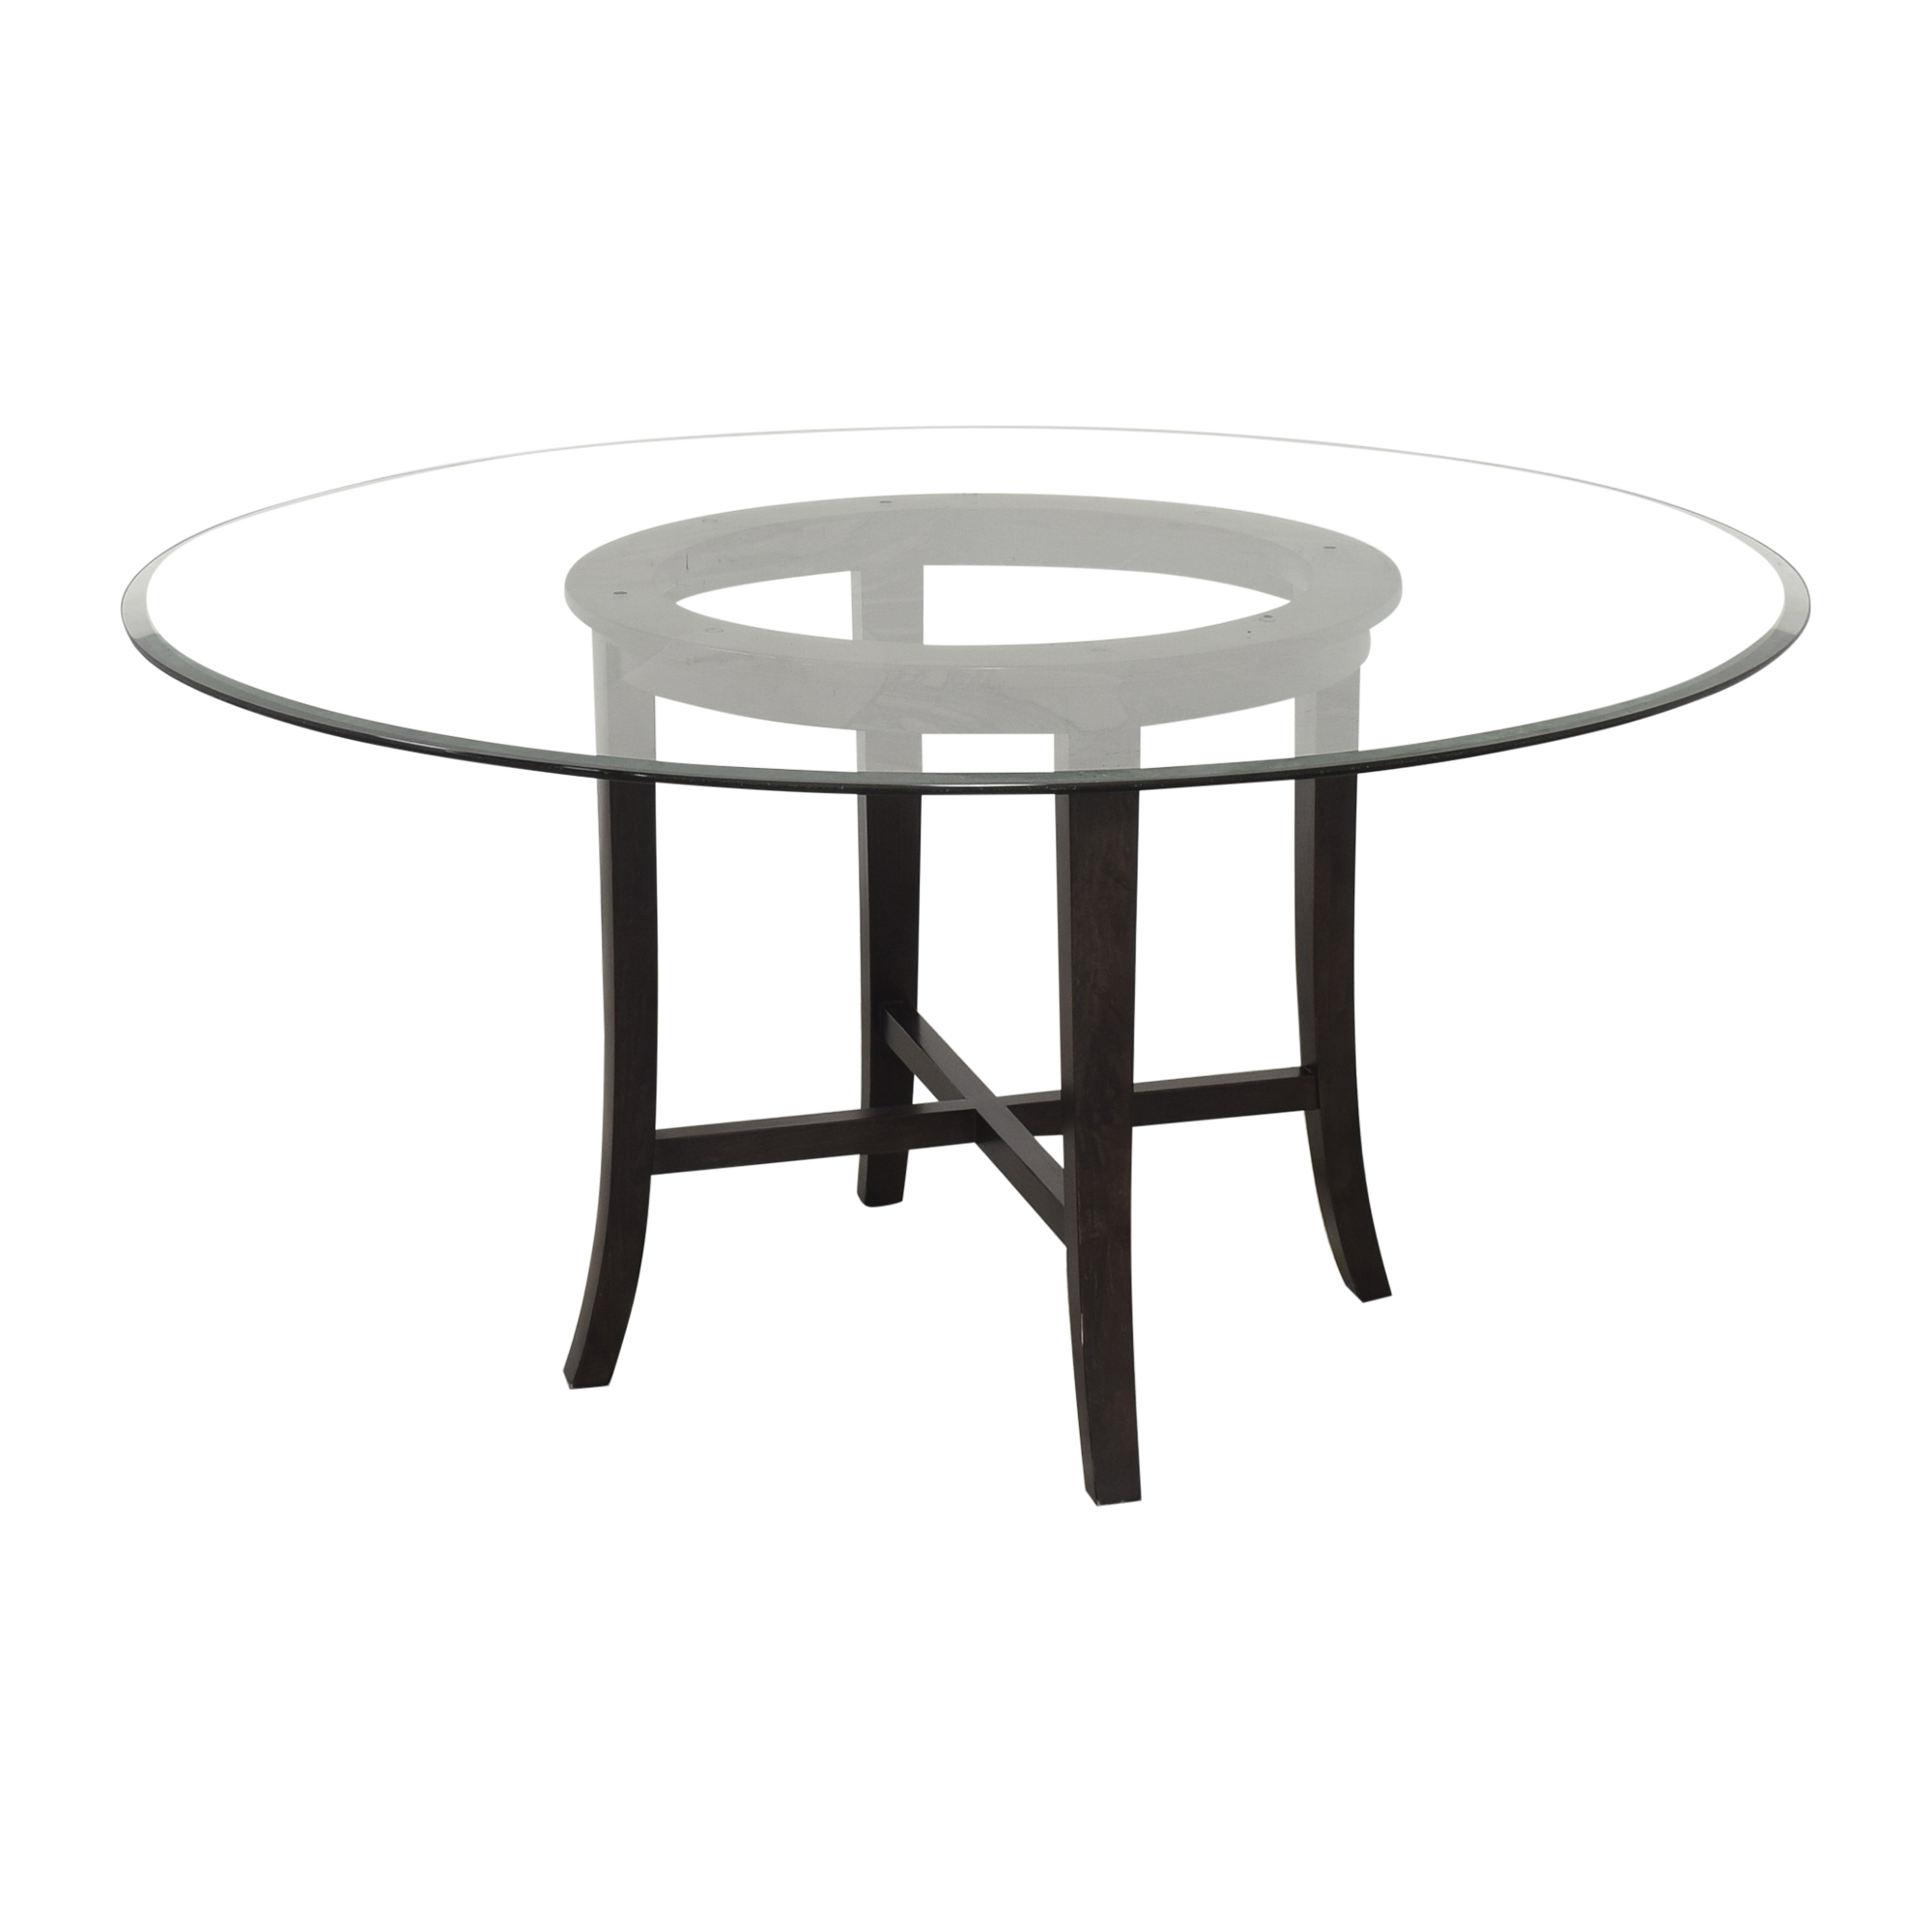 Crate & Barrel Halo Dining Table with Transparent Surface / Dinner Tables